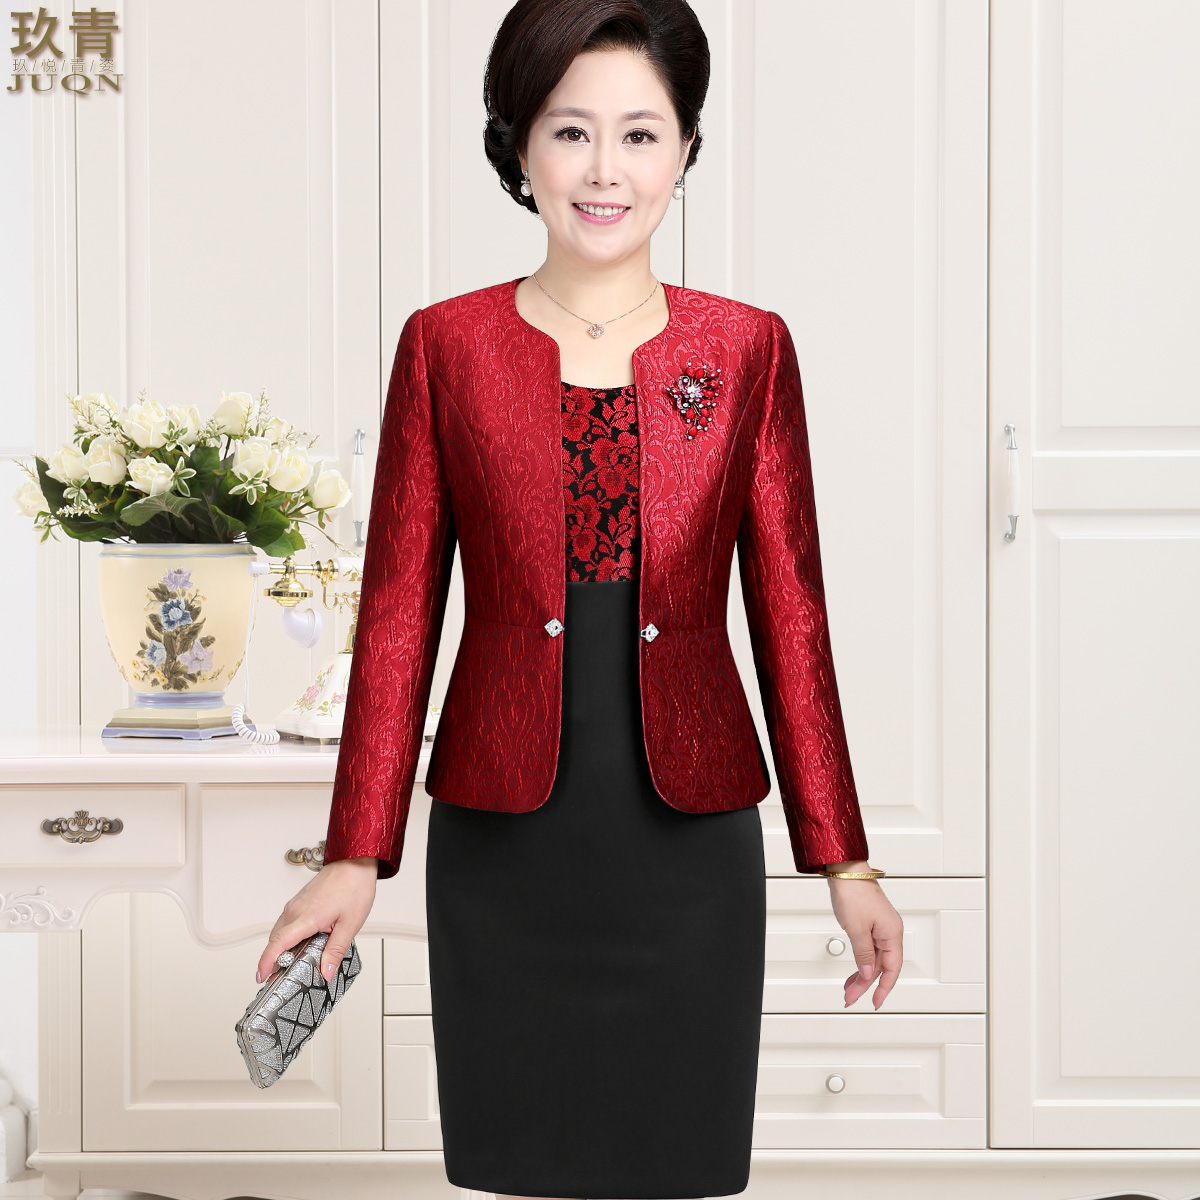 Nine green 2016 new autumn long sleeve suit king festive red wedding mother dress piece fitted dress with wine